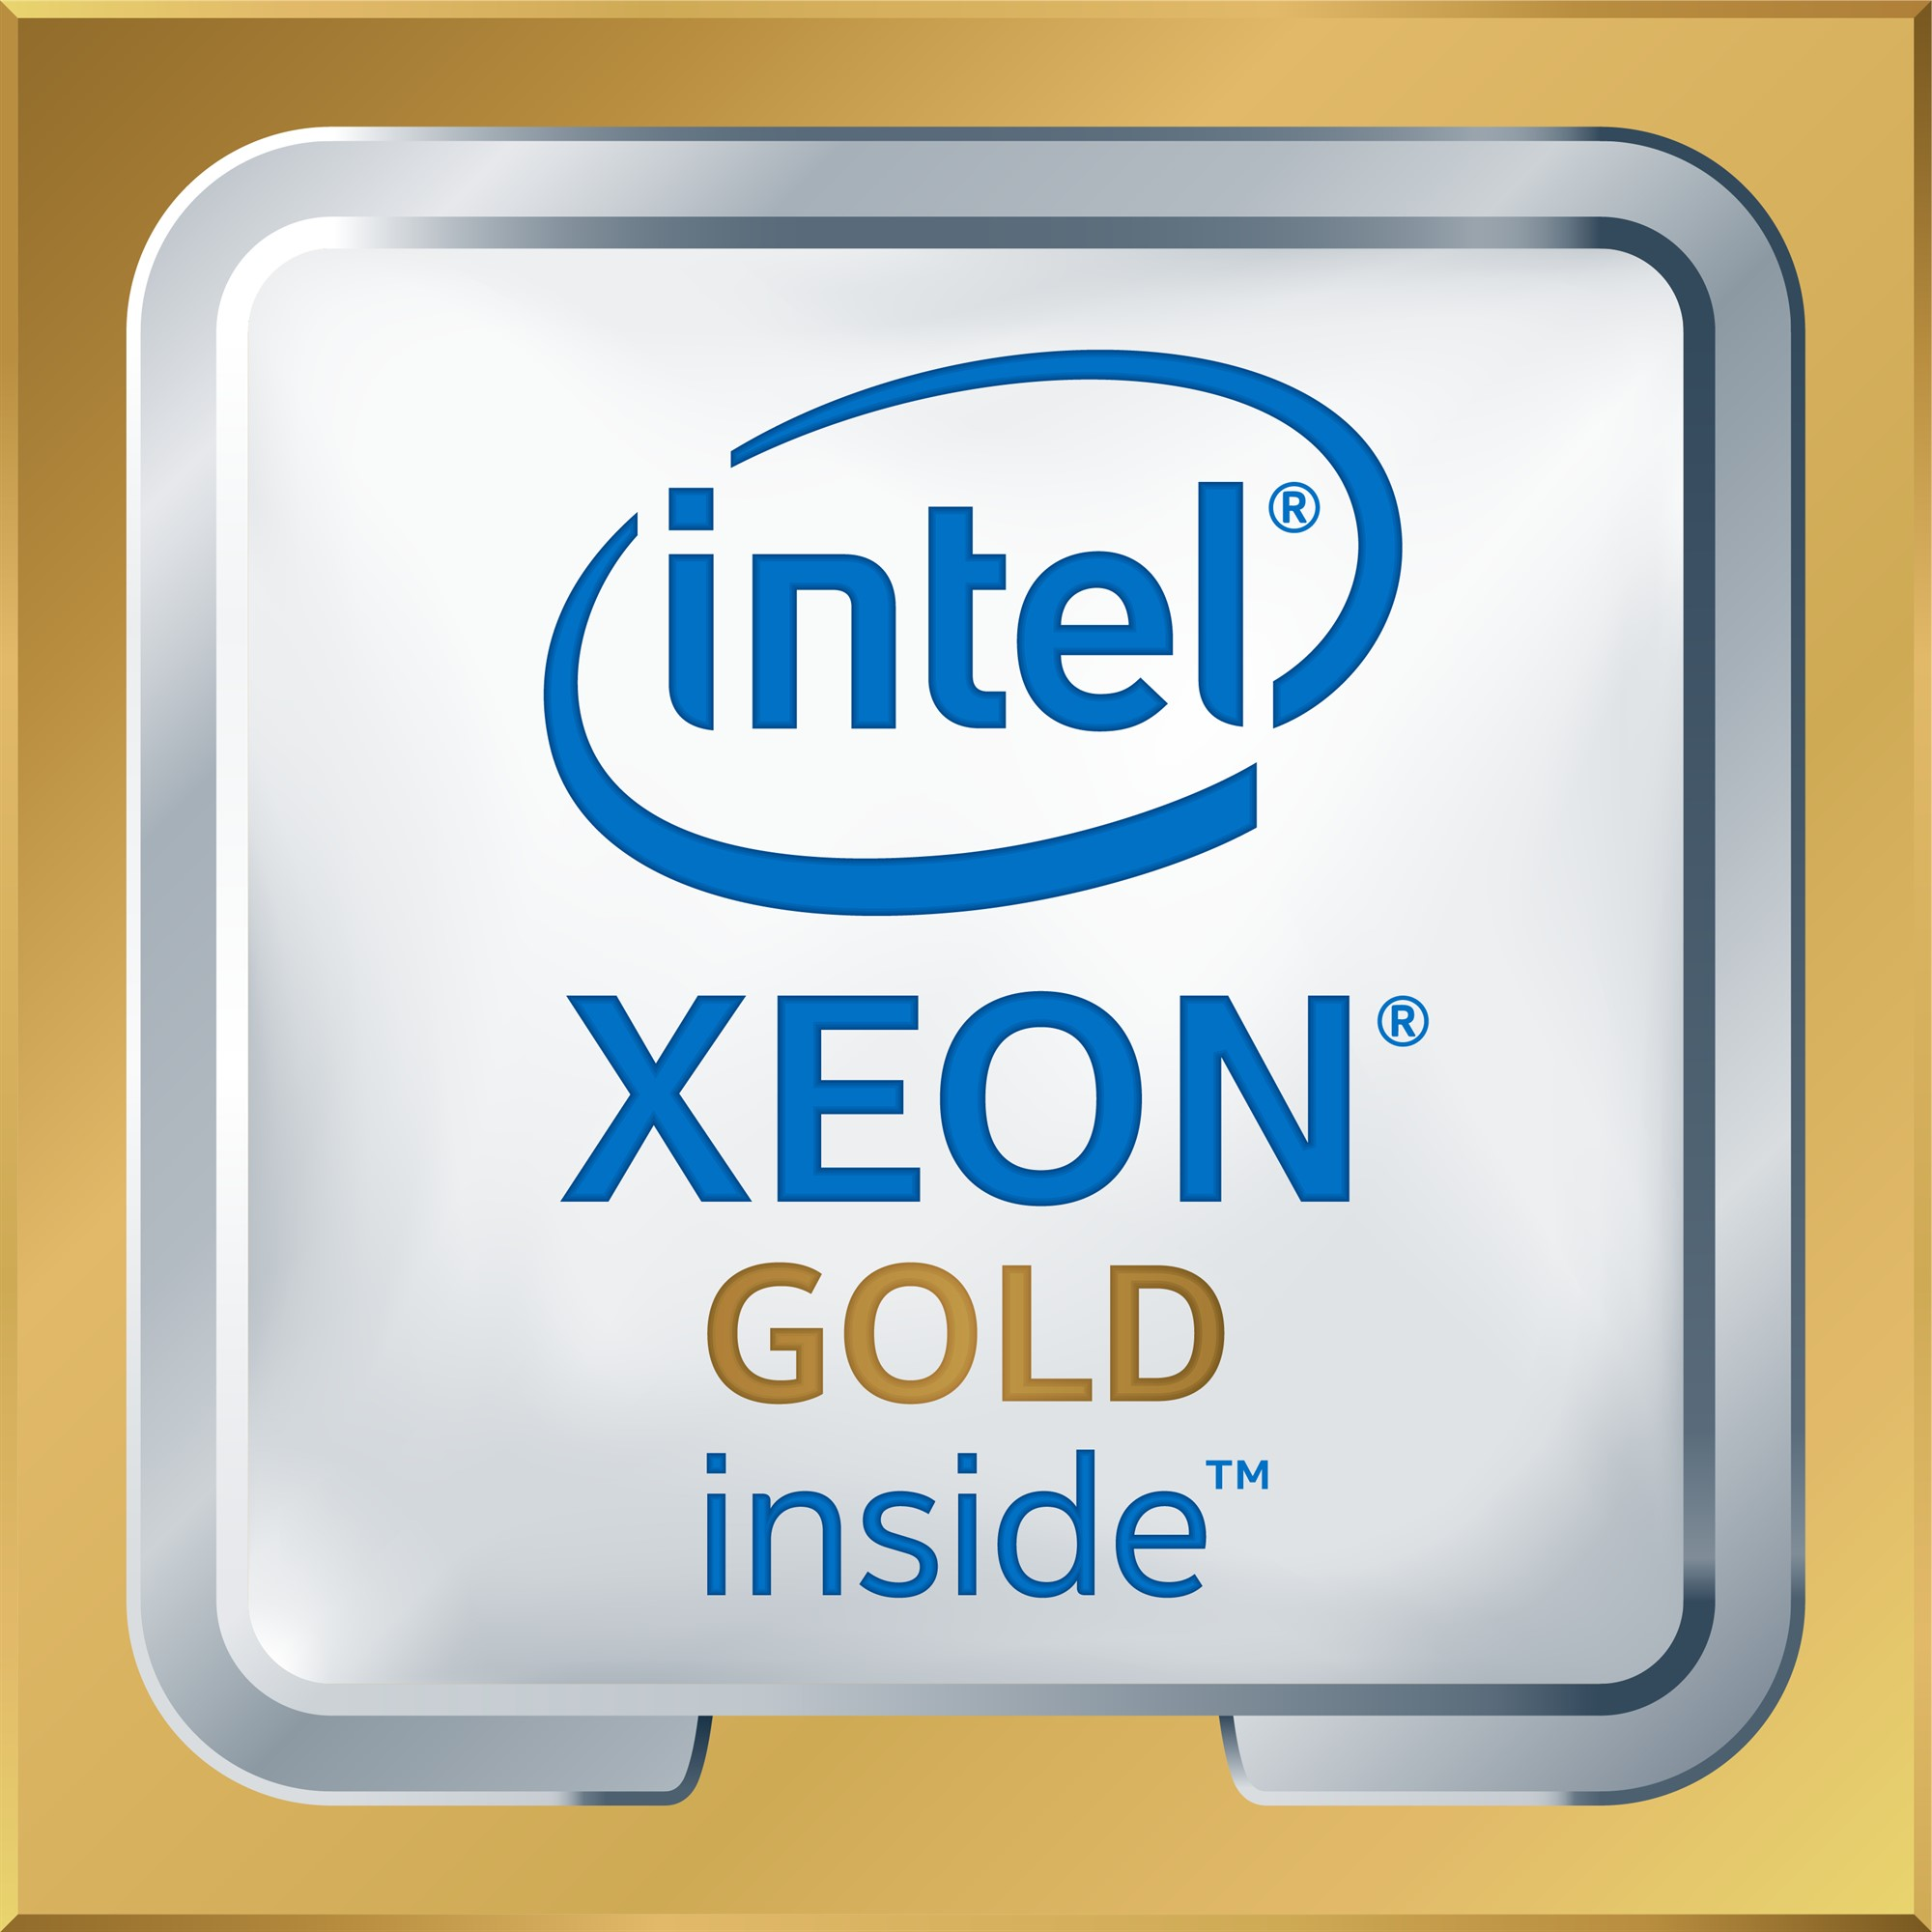 INTEL XEON GOLD 6130 PROCESSOR (22M CACHE, 2.10 GHZ) 2.10GHZ 22MB L3